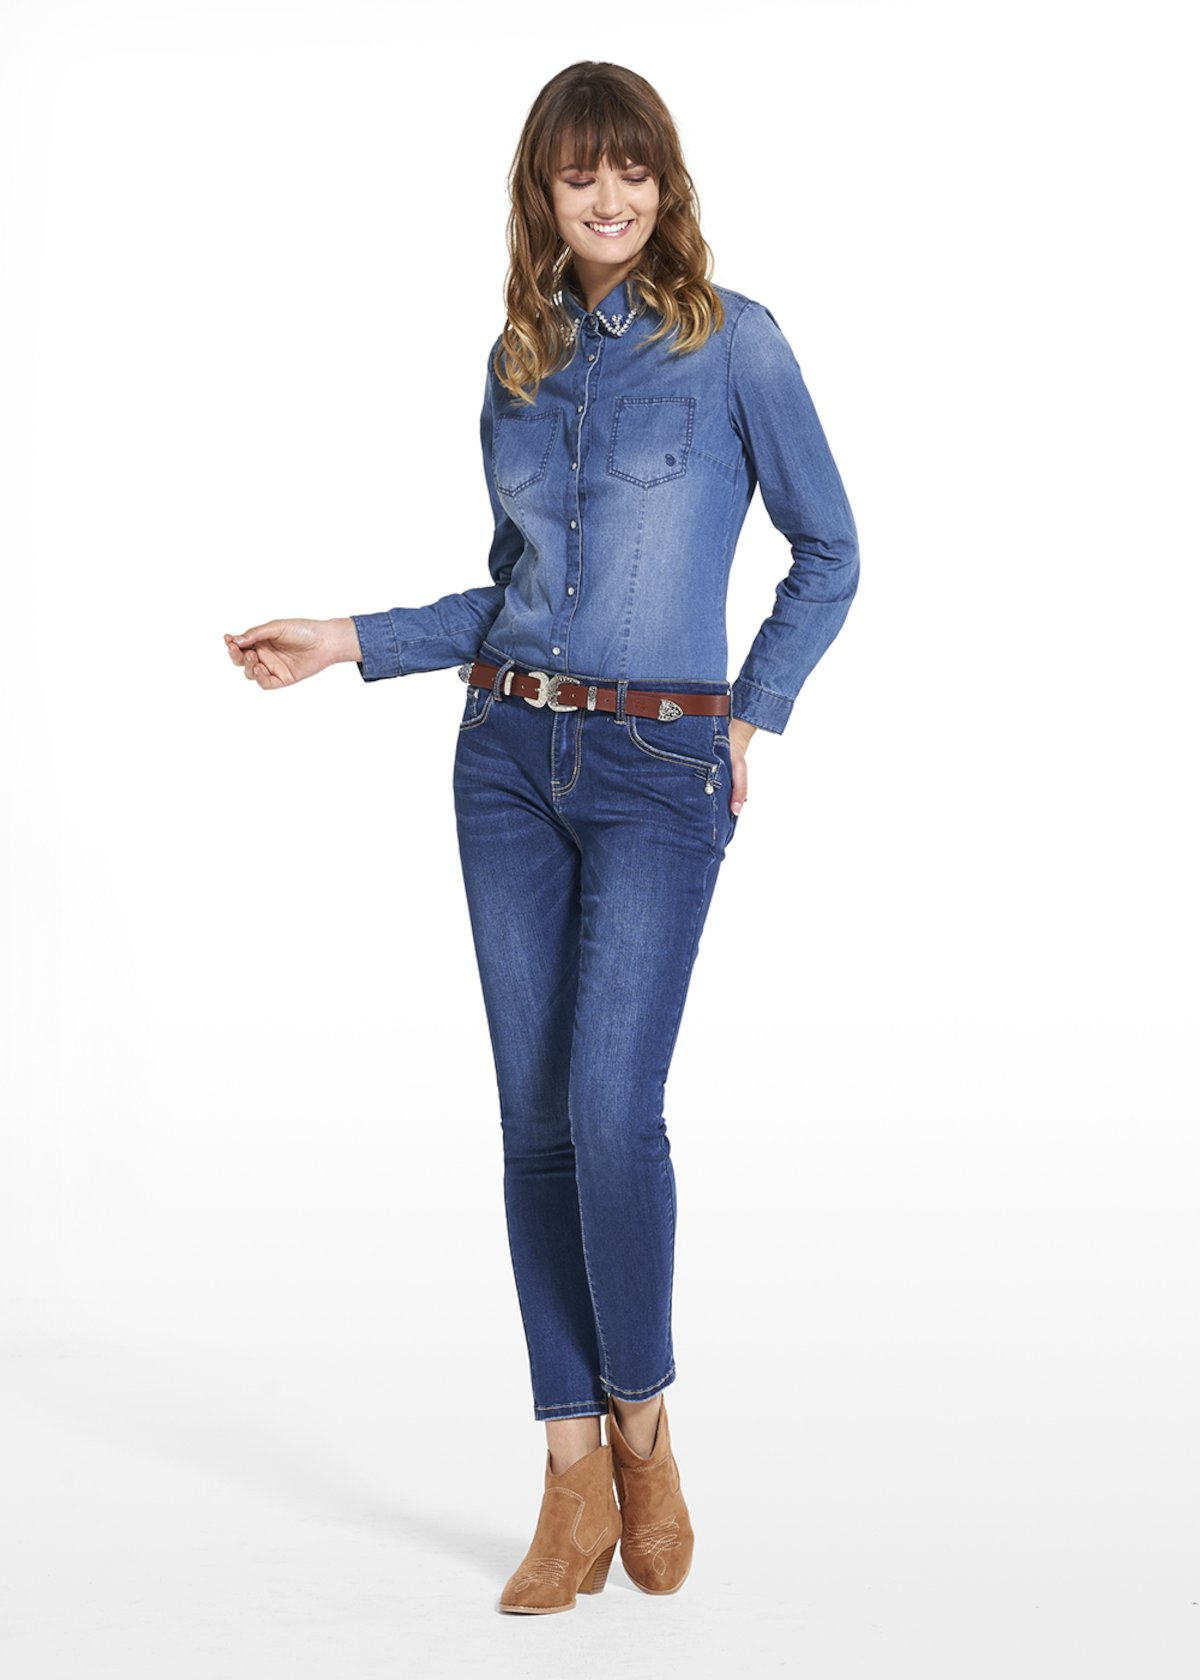 Camicia Chelly in denim con dettaglio crystal e light blue strass - Denim - Donna - Immagine categoria